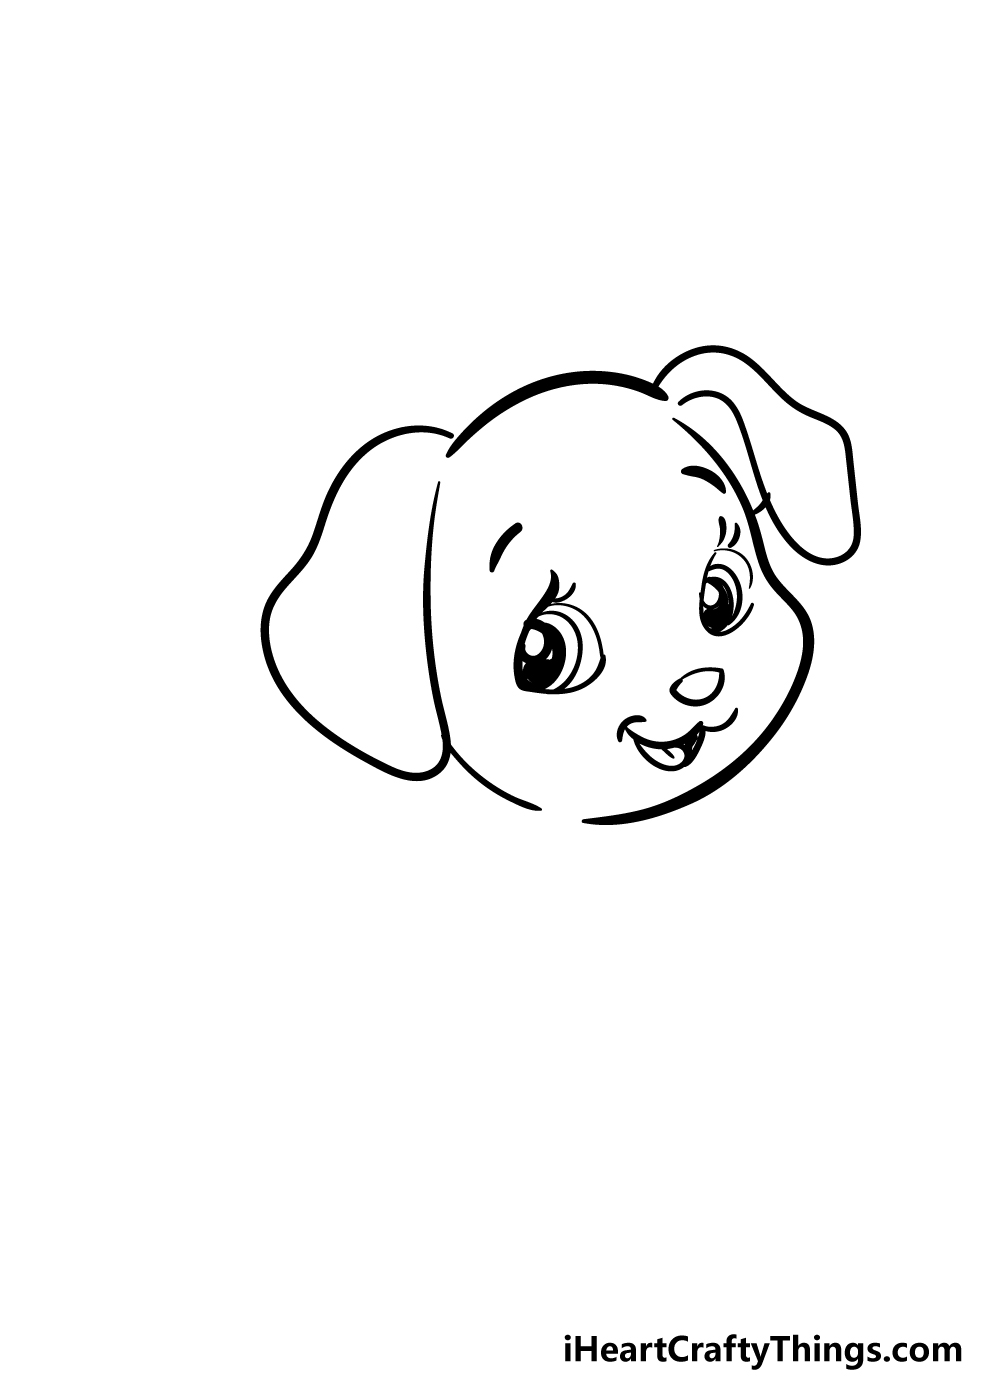 puppy drawing step 4